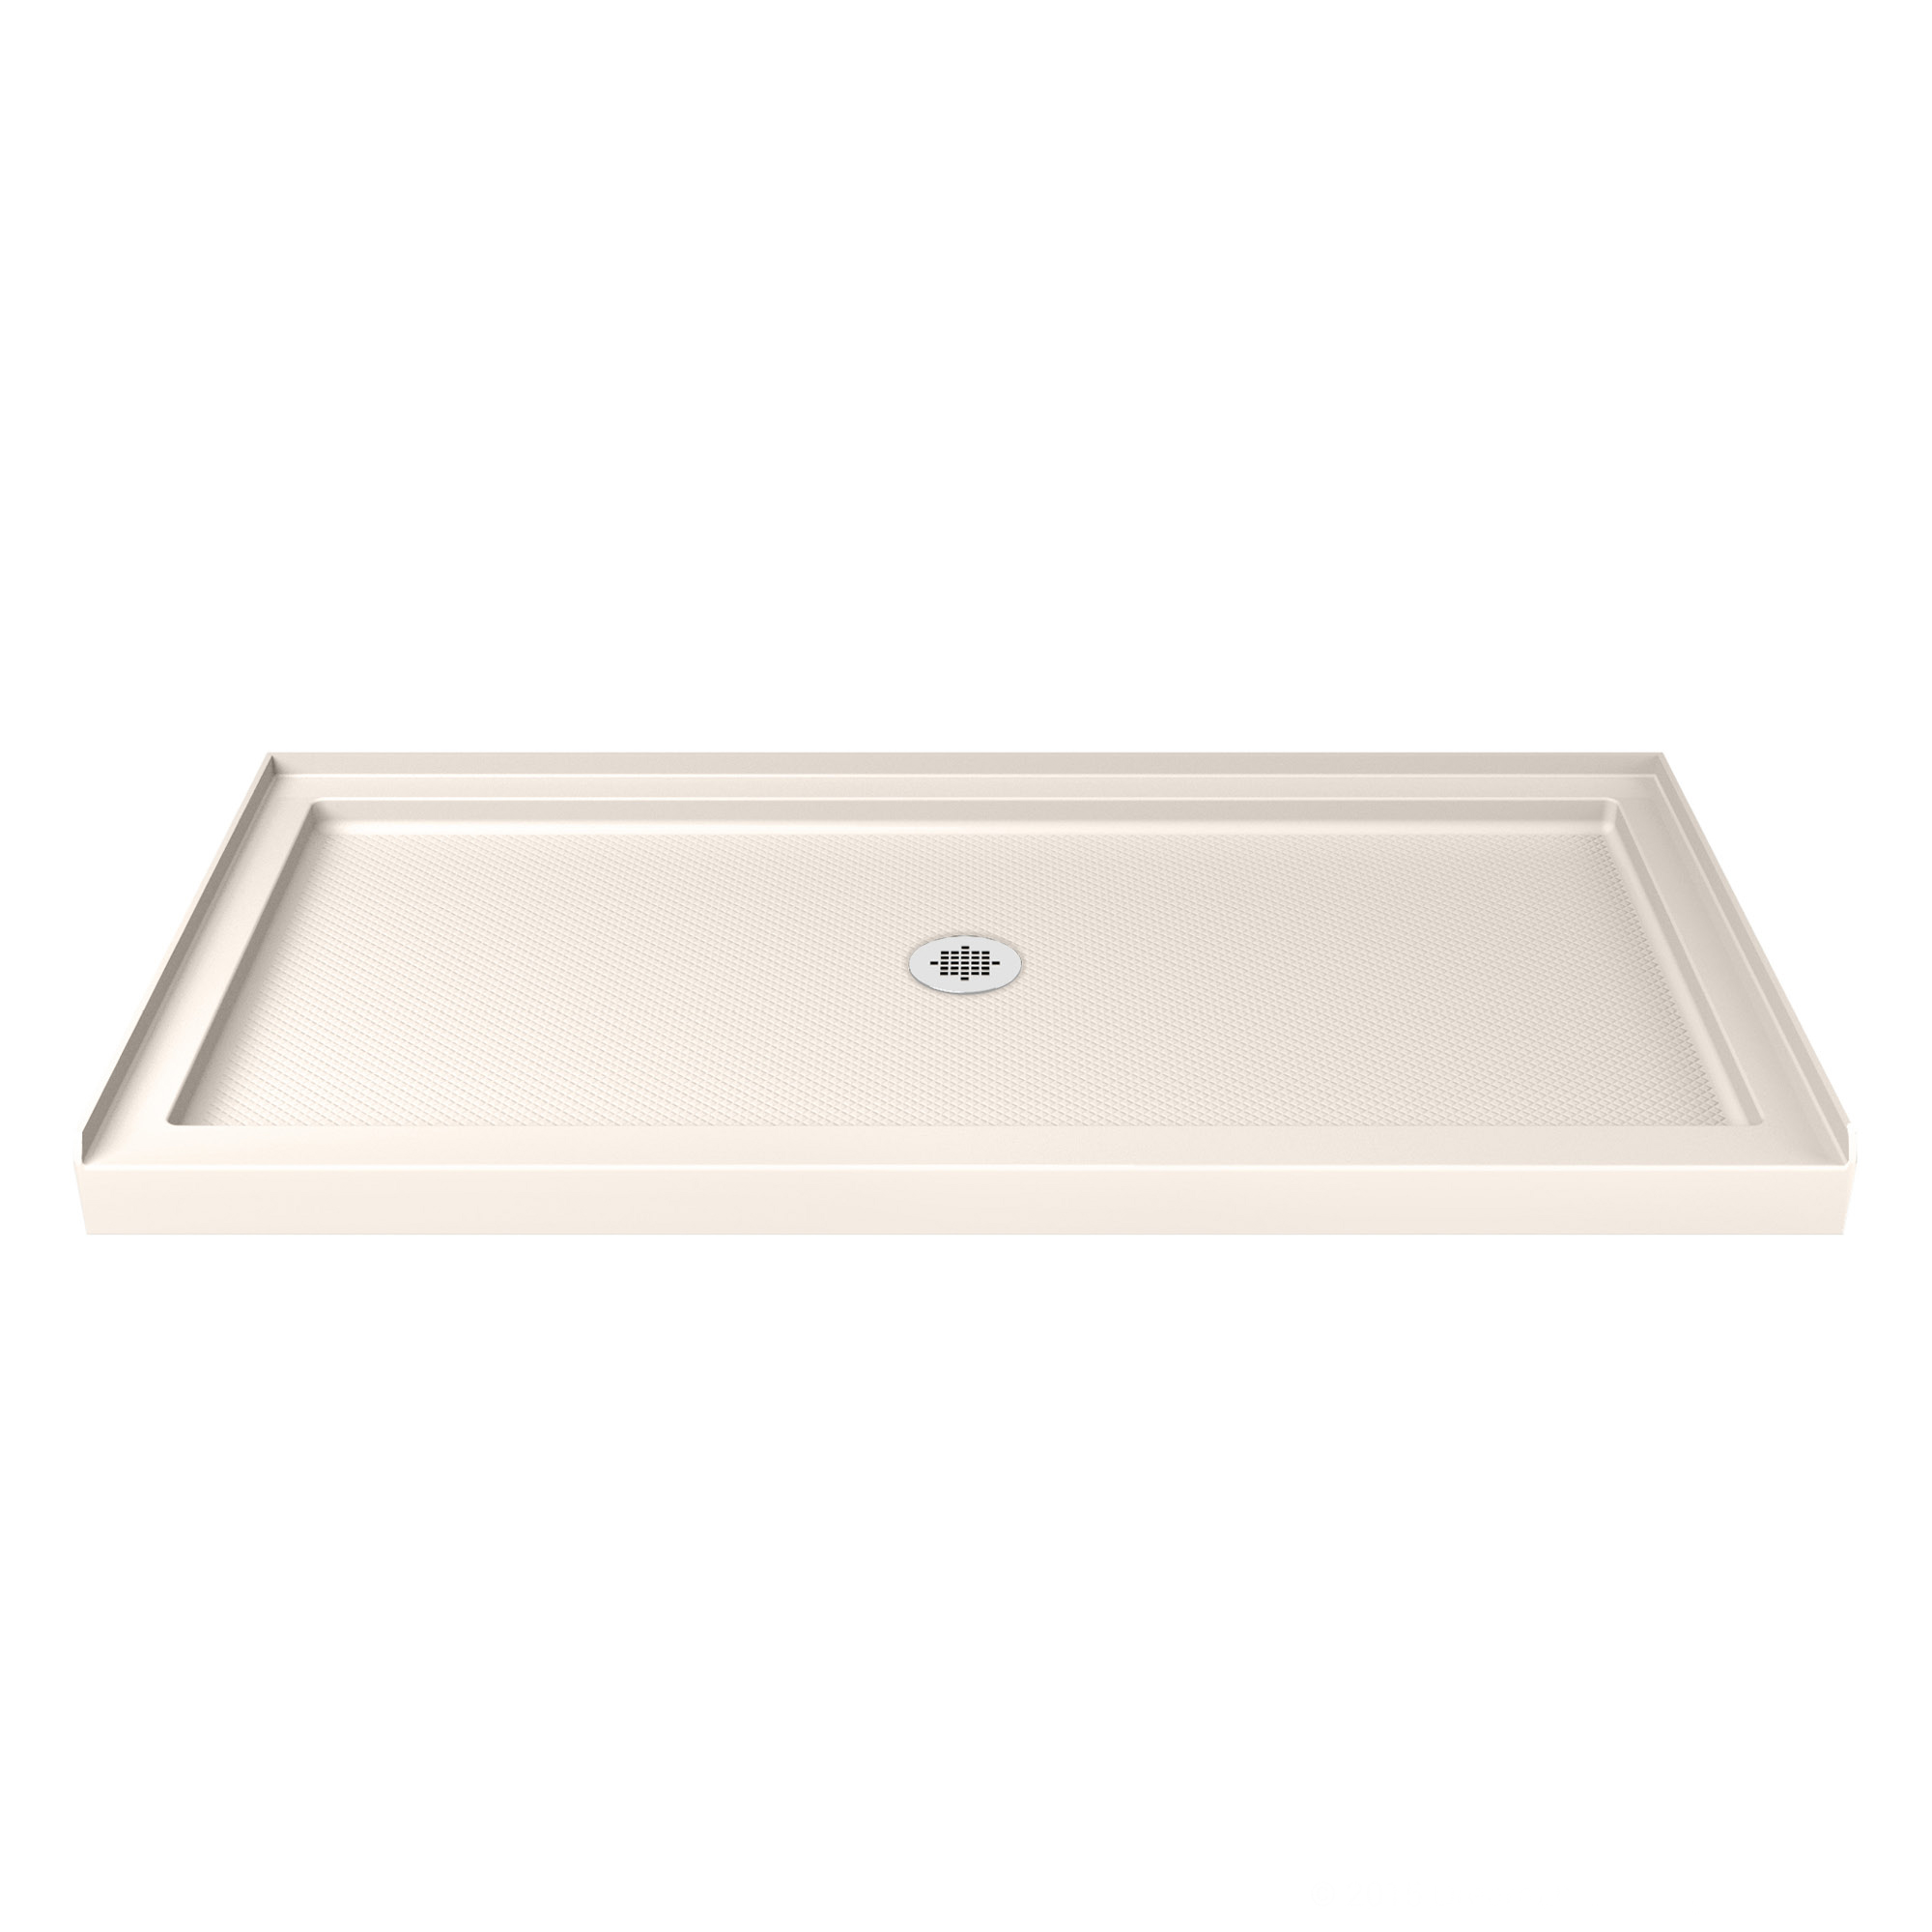 DreamLine SlimLine 36 in. D x 60 in. W x 2 3/4 in. H Center Drain Single Threshold Shower Base in White